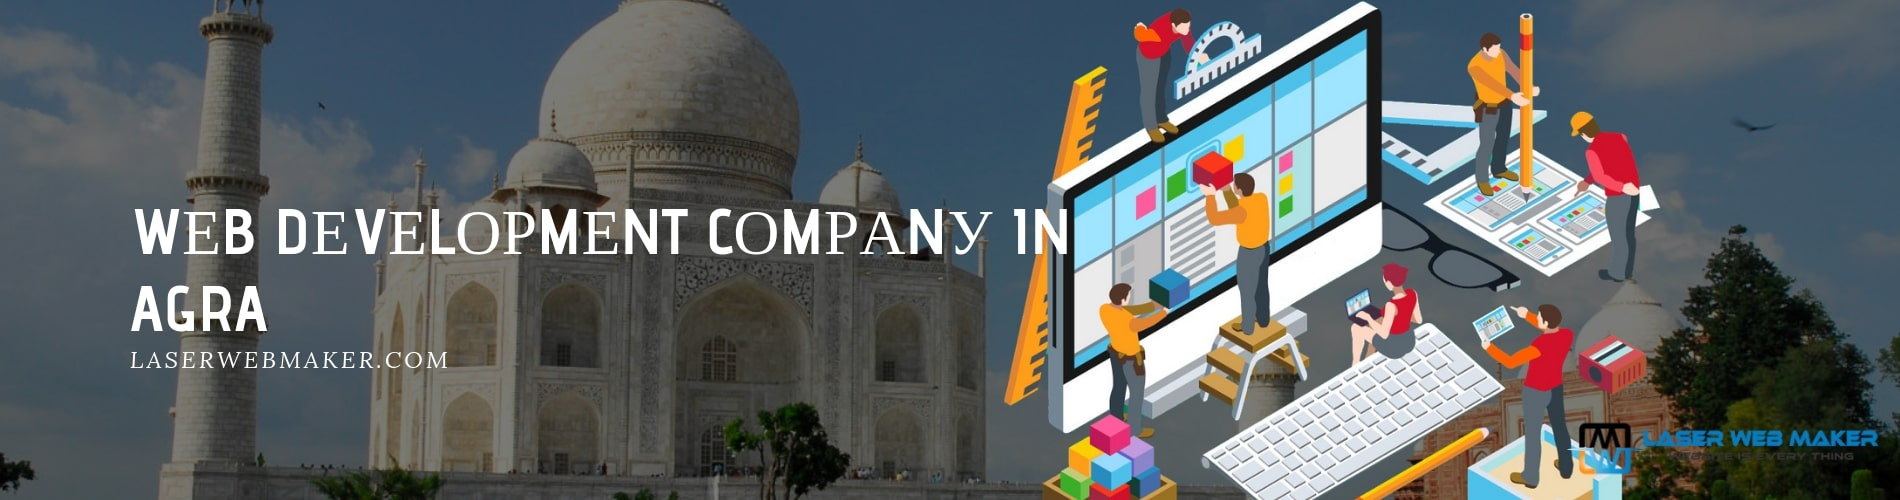 web development company in agra